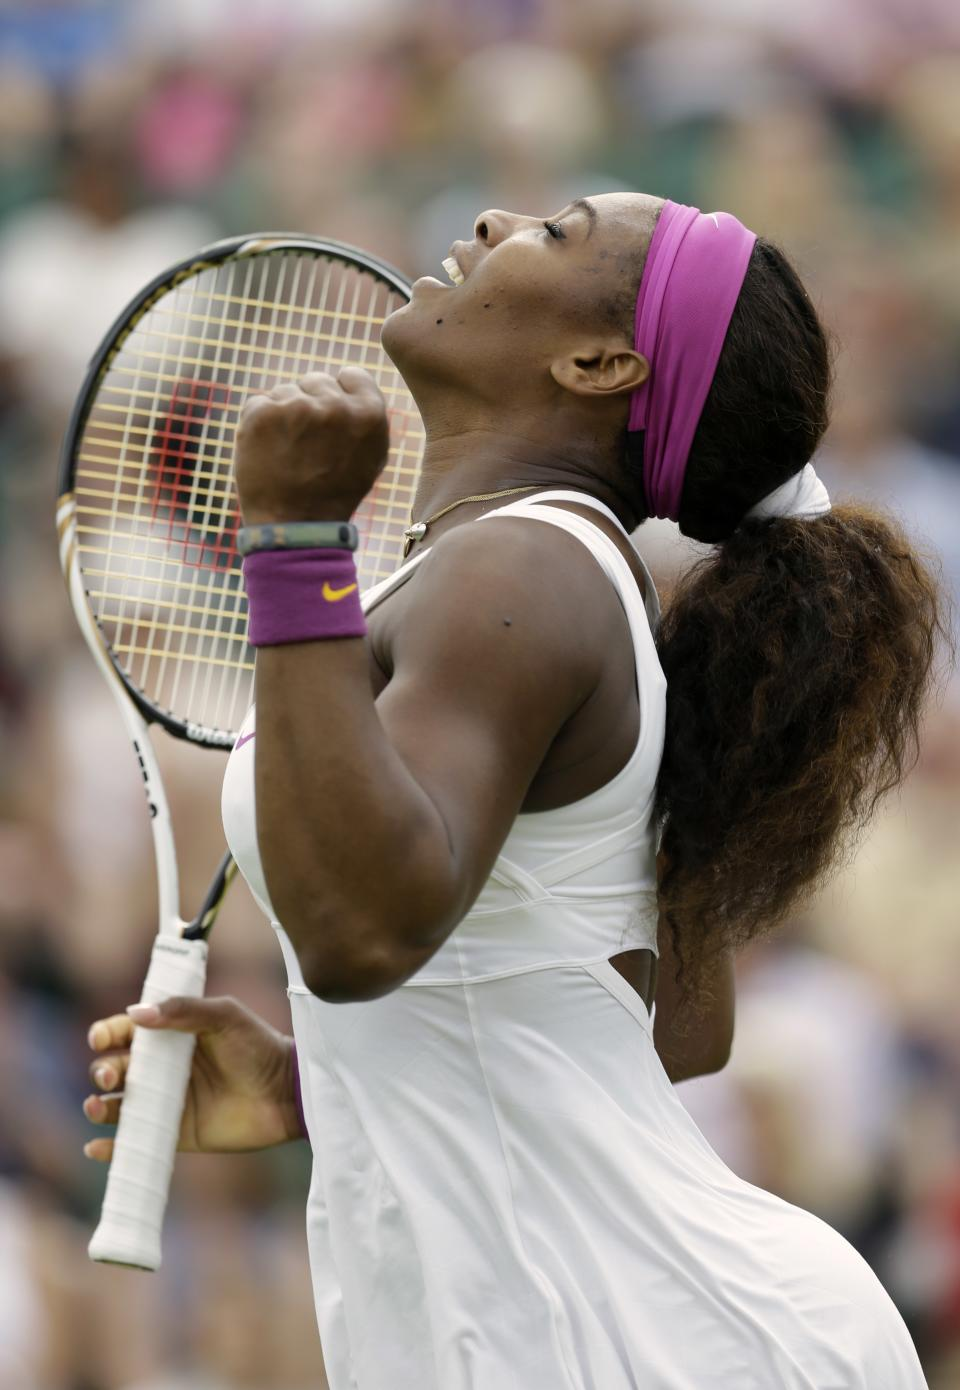 Serena Williams of the United States reacts during a first round women's singles match against Barbora Zahlavova Strycova of the Czech Republic at the All England Lawn Tennis Championships at Wimbledon, England, Tuesday, June 26, 2012. (AP Photo/Alastair Grant)